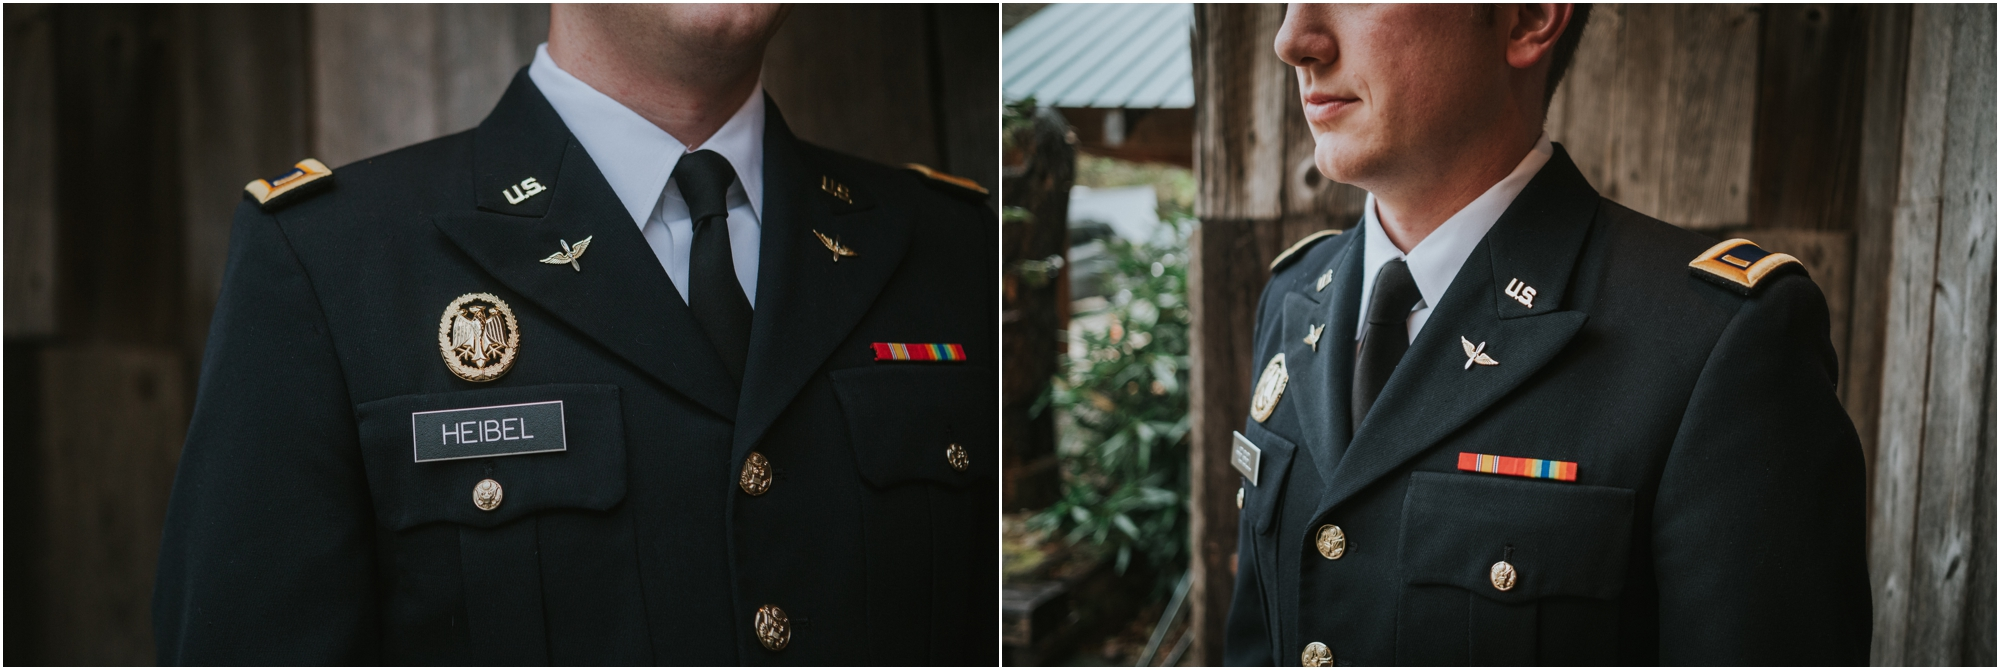 Sugar-Hollow-Retreat-Butler-Elizabethton-Tennessee-Rustic-Rainy-Wedding-Adventurous-Couple_0063.jpg